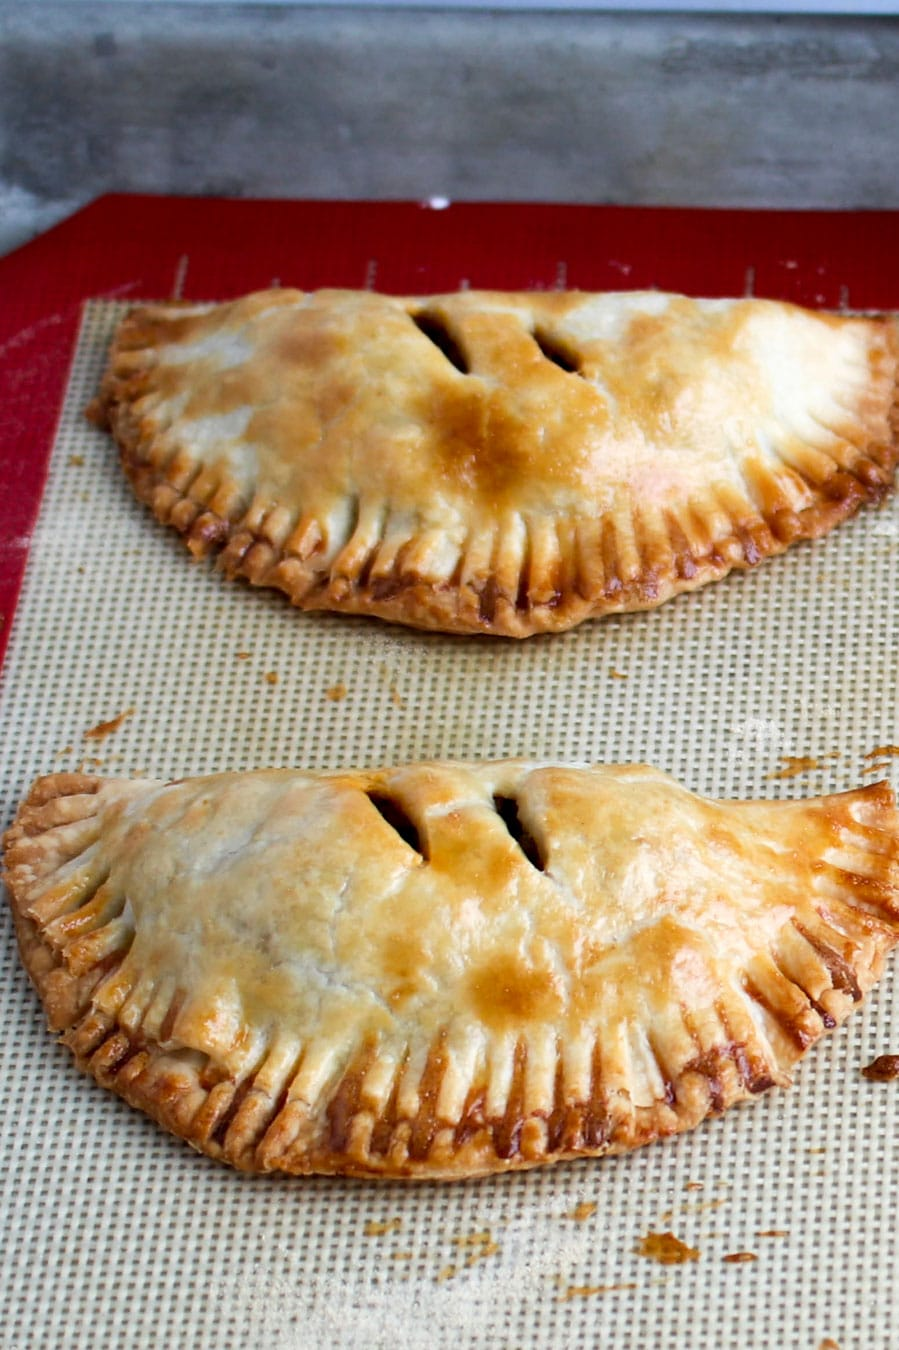 two empanadas on a baking sheet